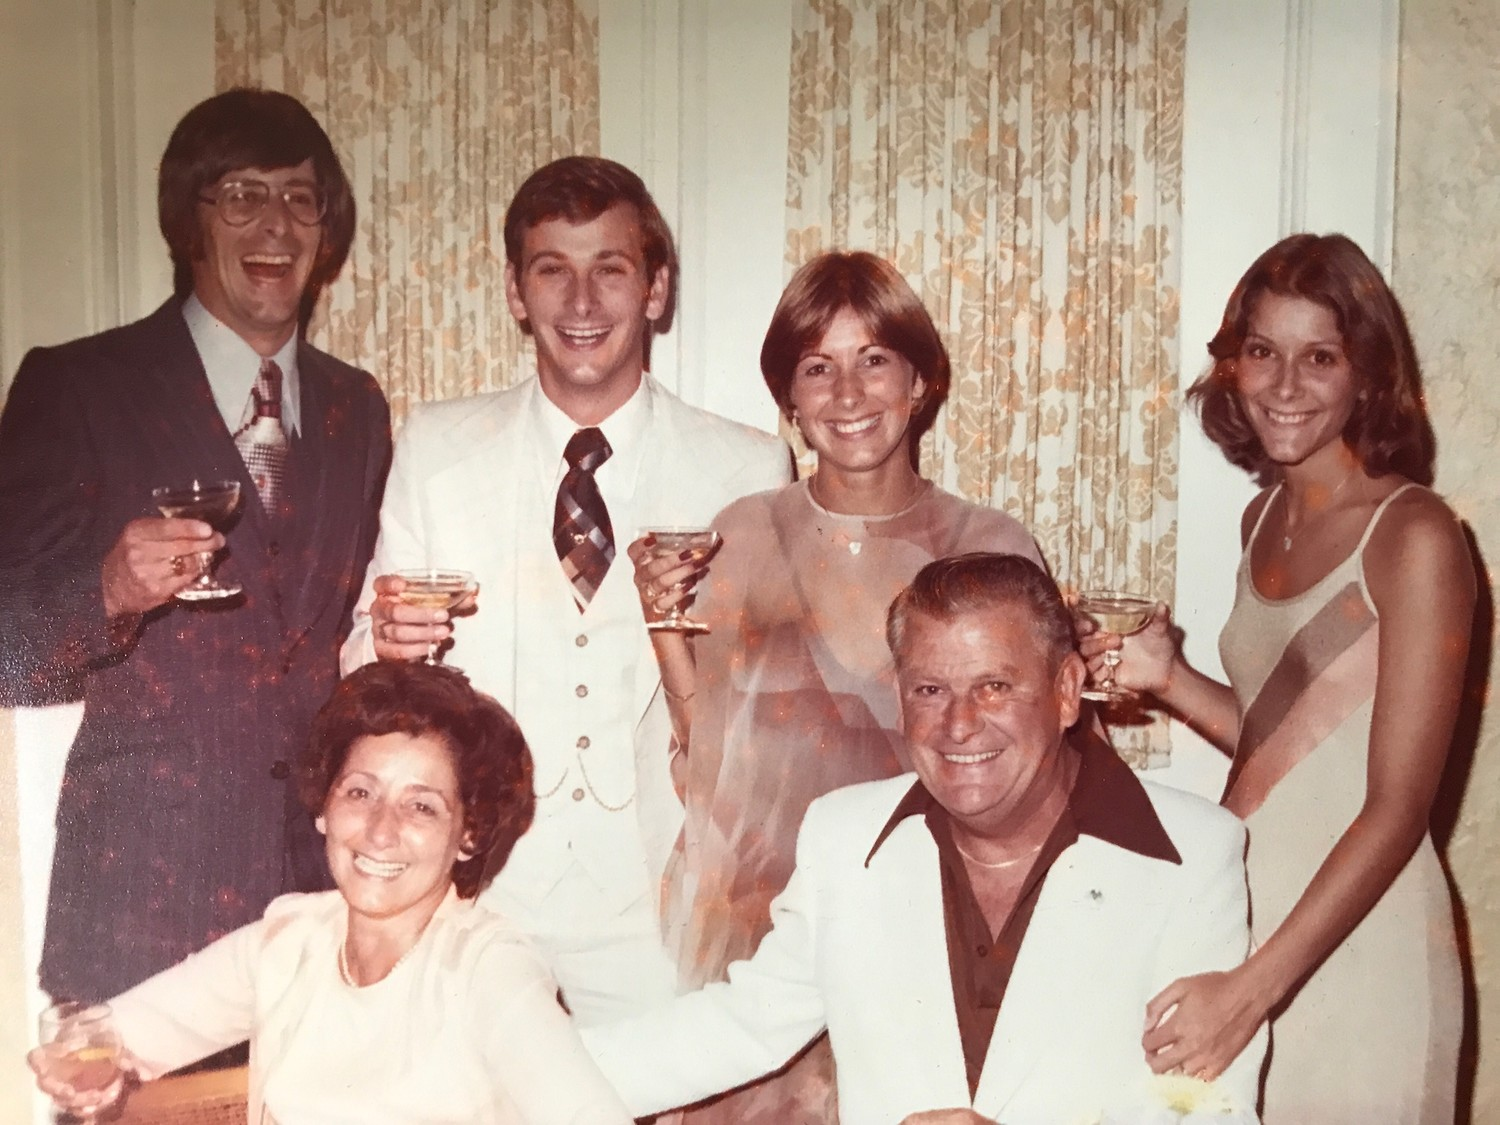 The DeBauns, clockwise from top left, Bruce, Craig, Pam, Priscilla and Joe and Edyth at the couple's 35th wedding anniversary in 1977 at the Rockville Links country club. Edyth died on Aug. 16.